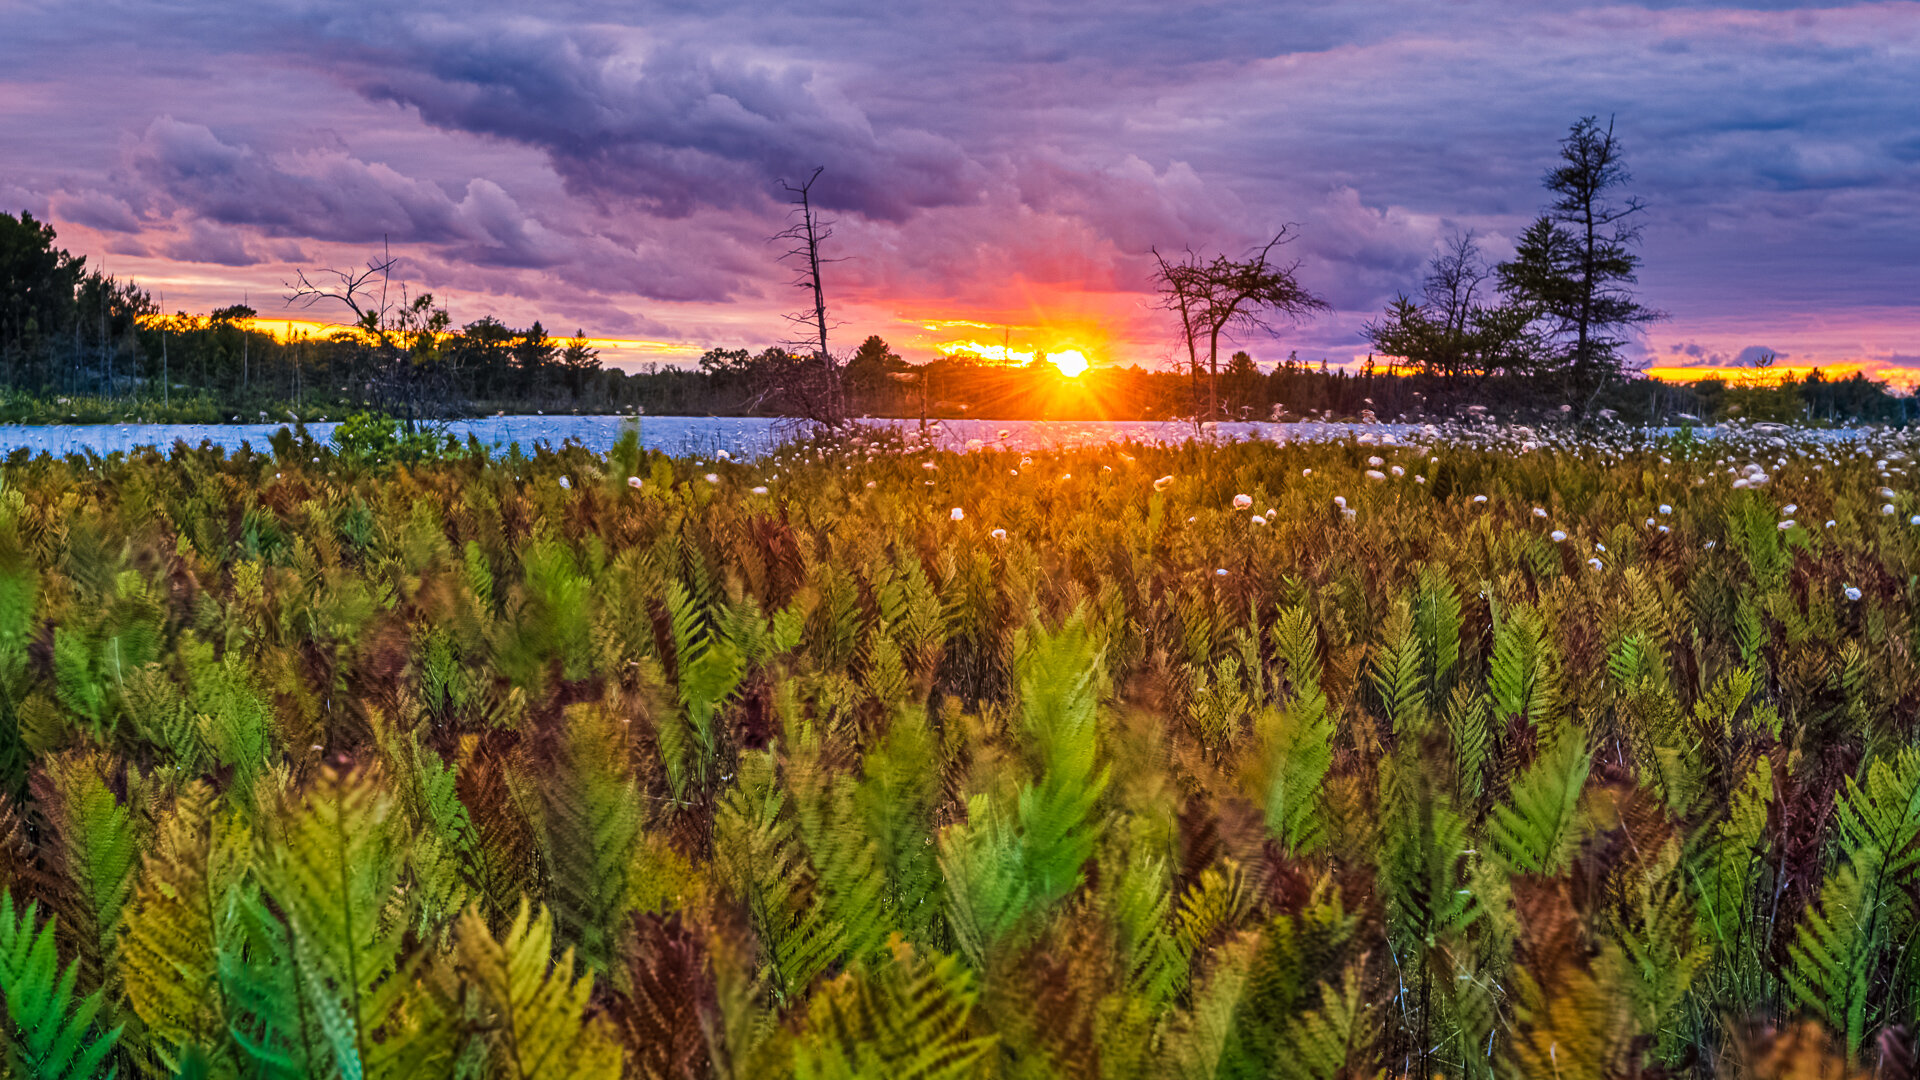 Torrance Barrens Ferns and Clouds